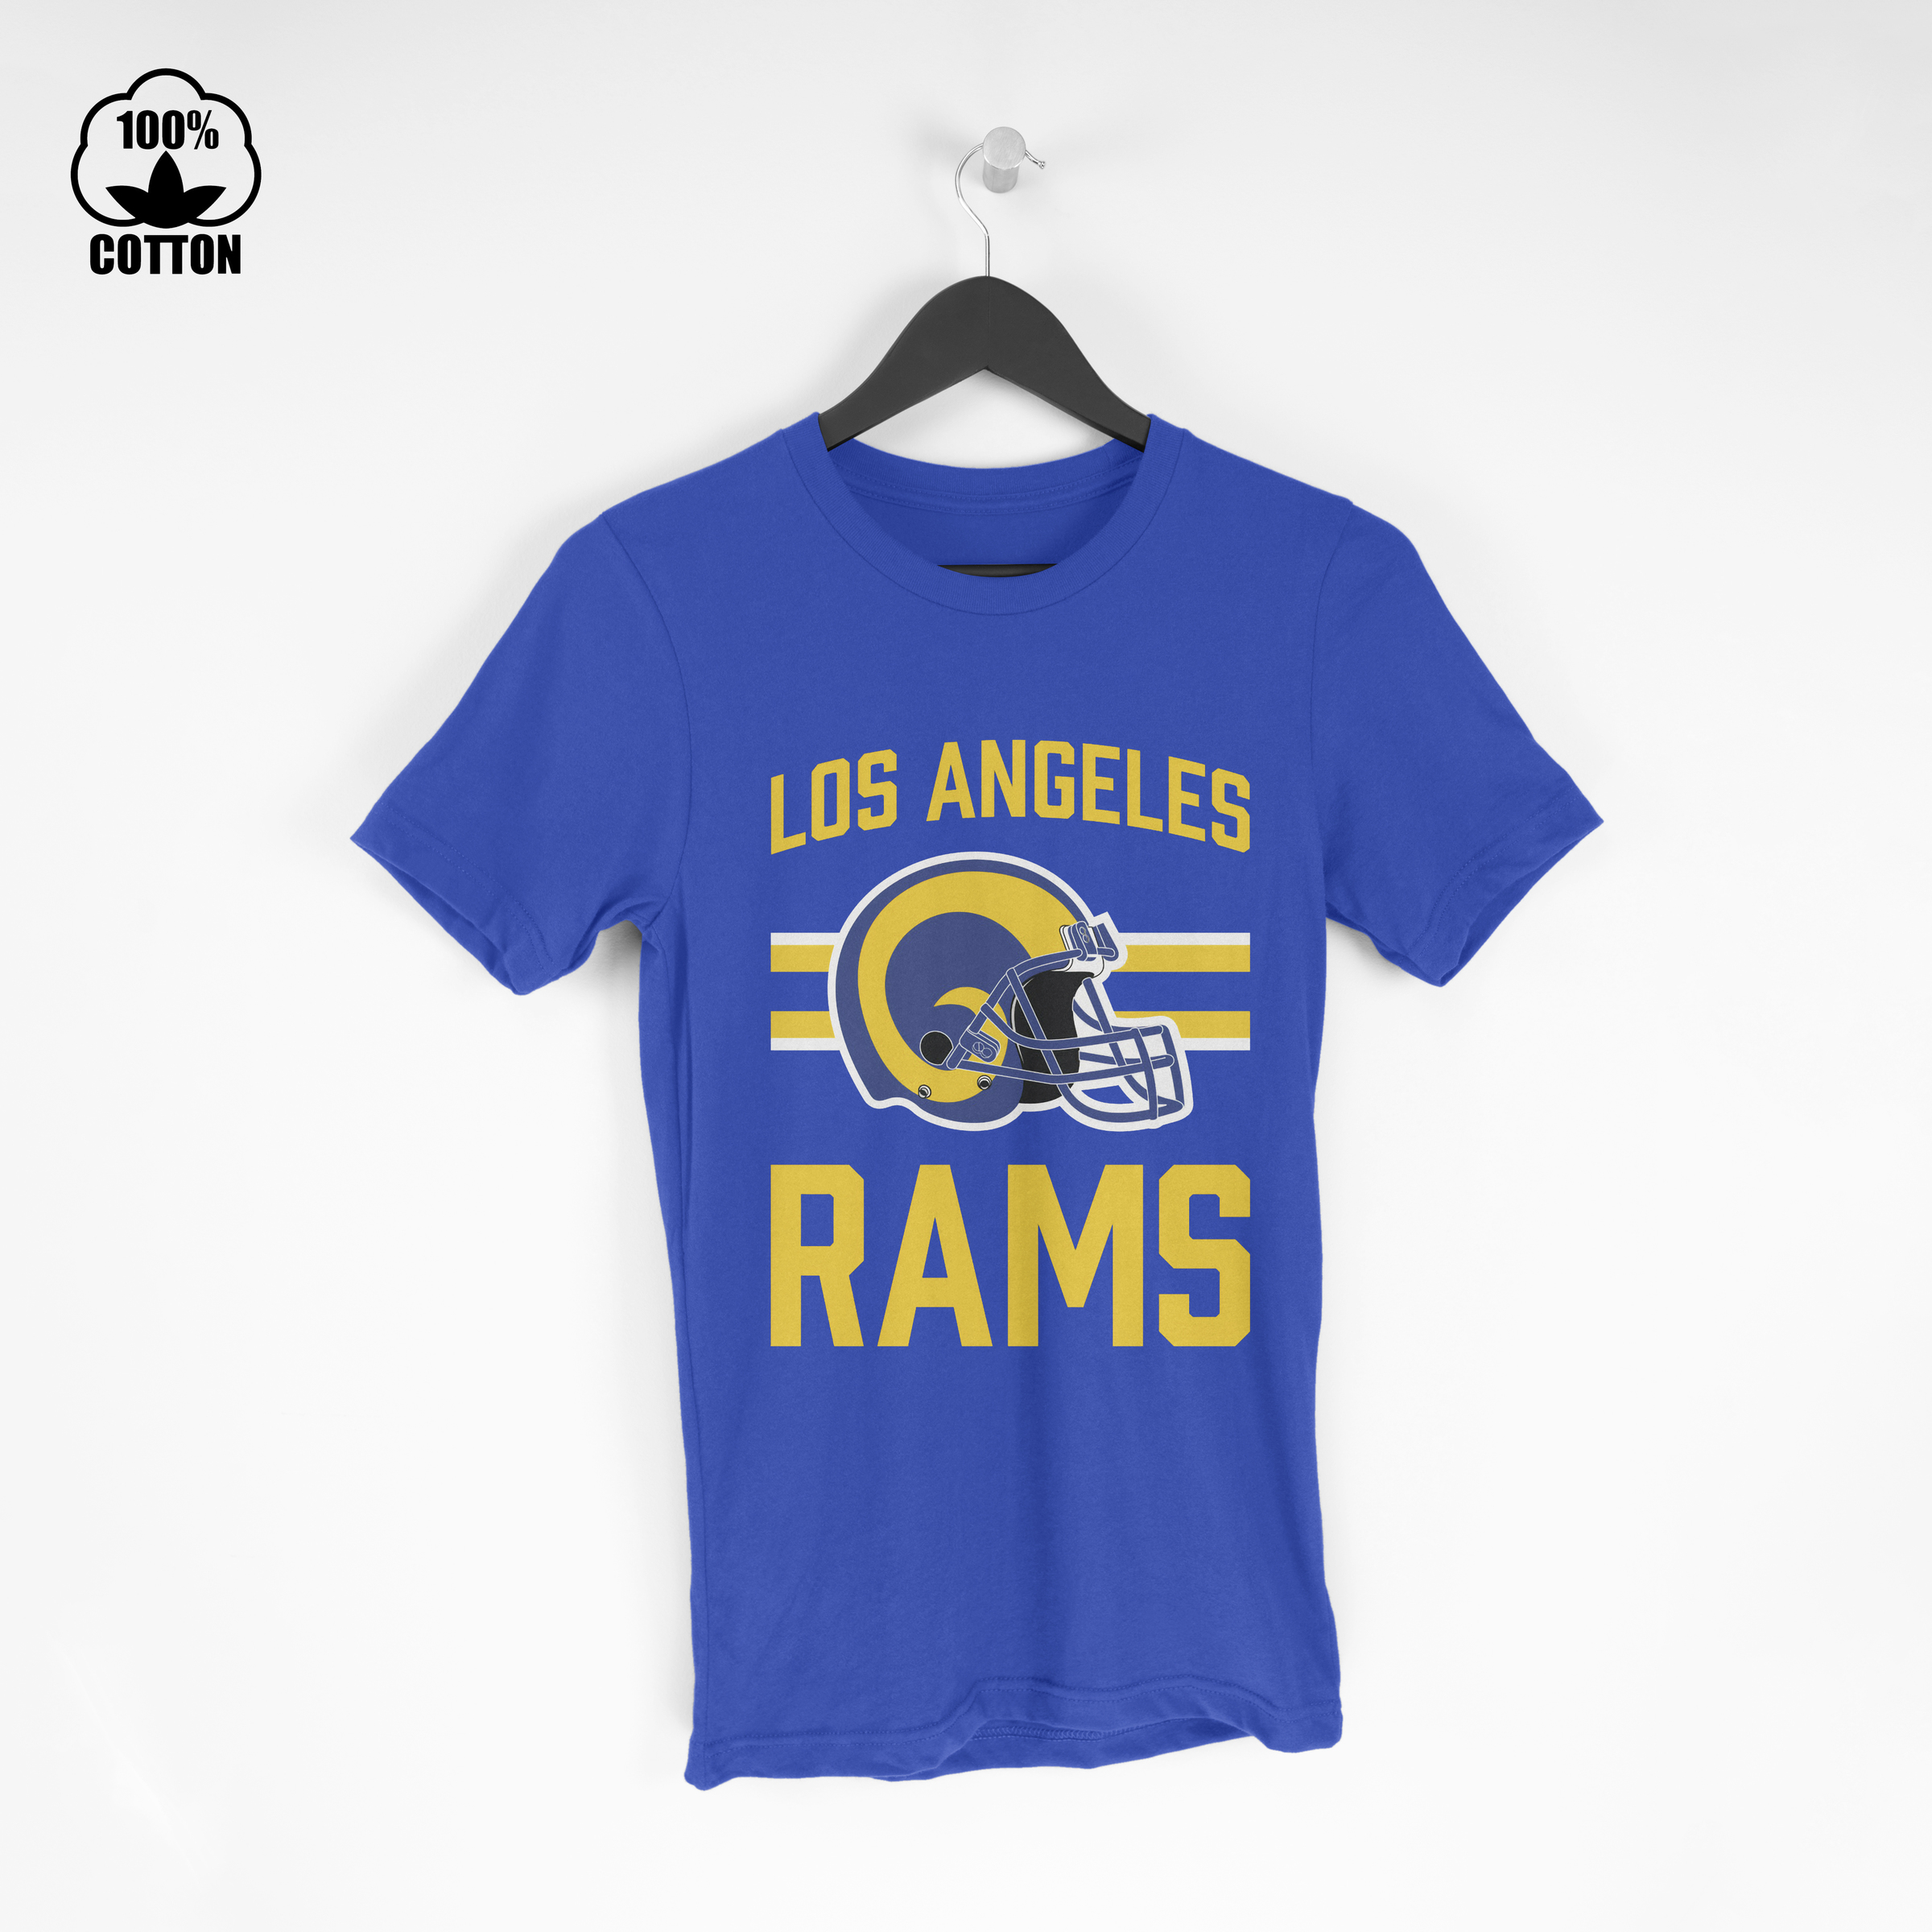 LIMITED EDITION!! Los Angeles Rams OD4 T Shirt Tee Dodger Blue.jpg